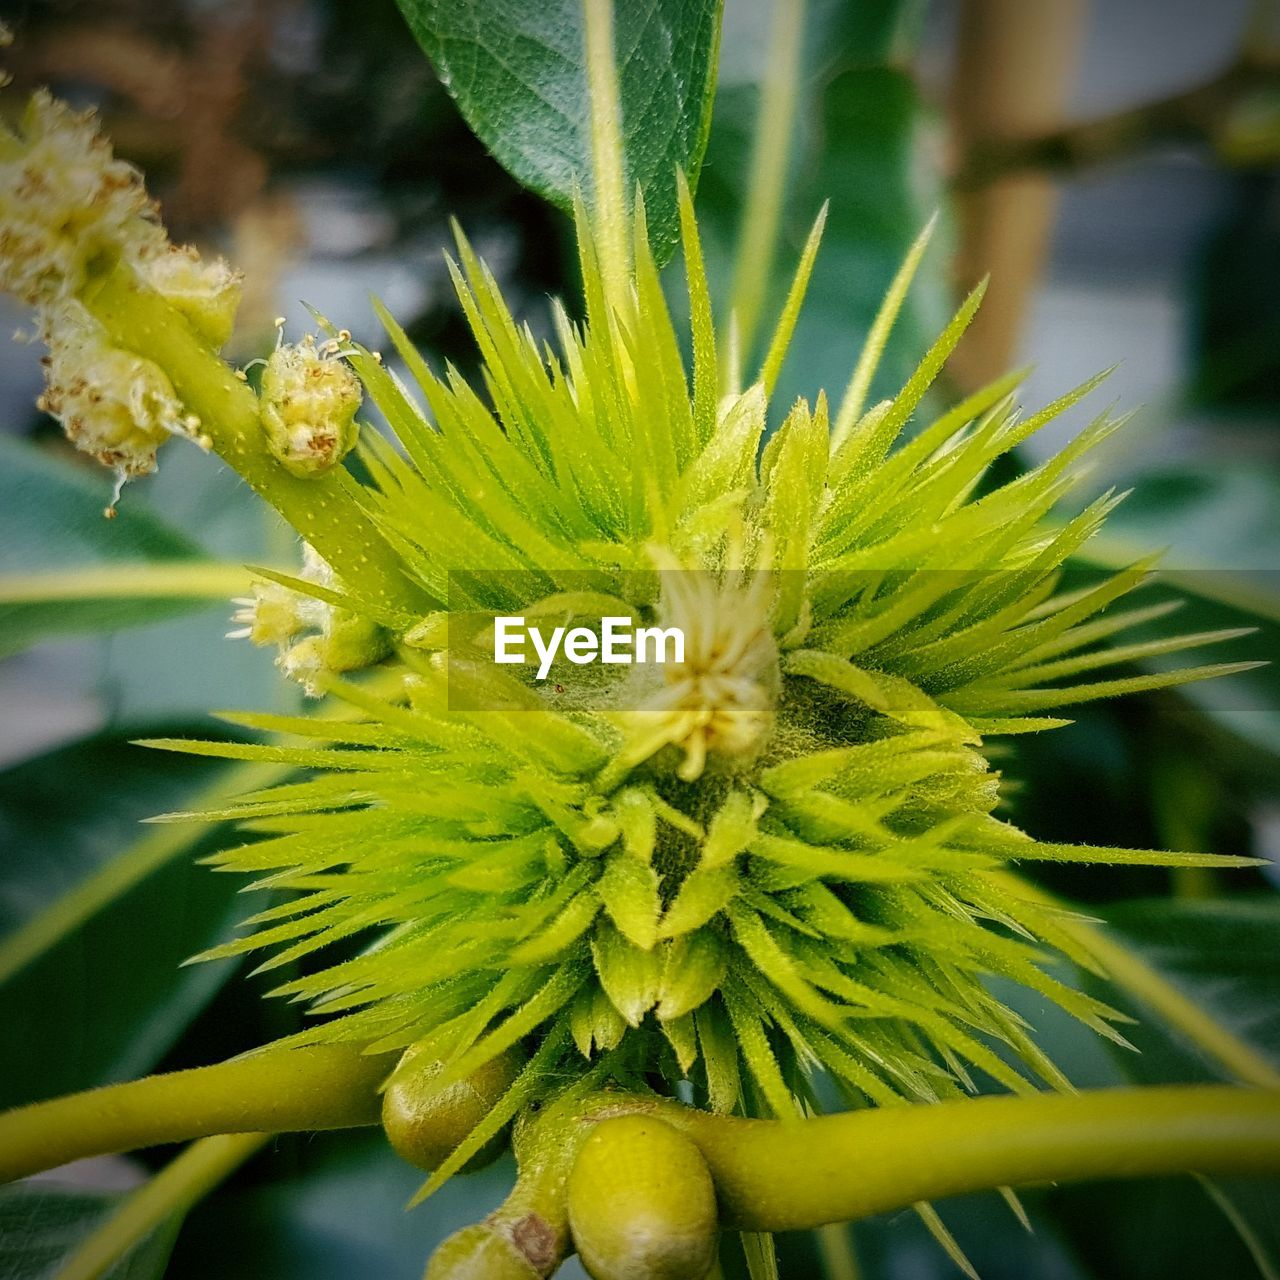 plant, growth, beauty in nature, close-up, flower, flowering plant, freshness, vulnerability, fragility, focus on foreground, no people, day, nature, green color, flower head, inflorescence, selective focus, outdoors, yellow, petal, pollen, sepal